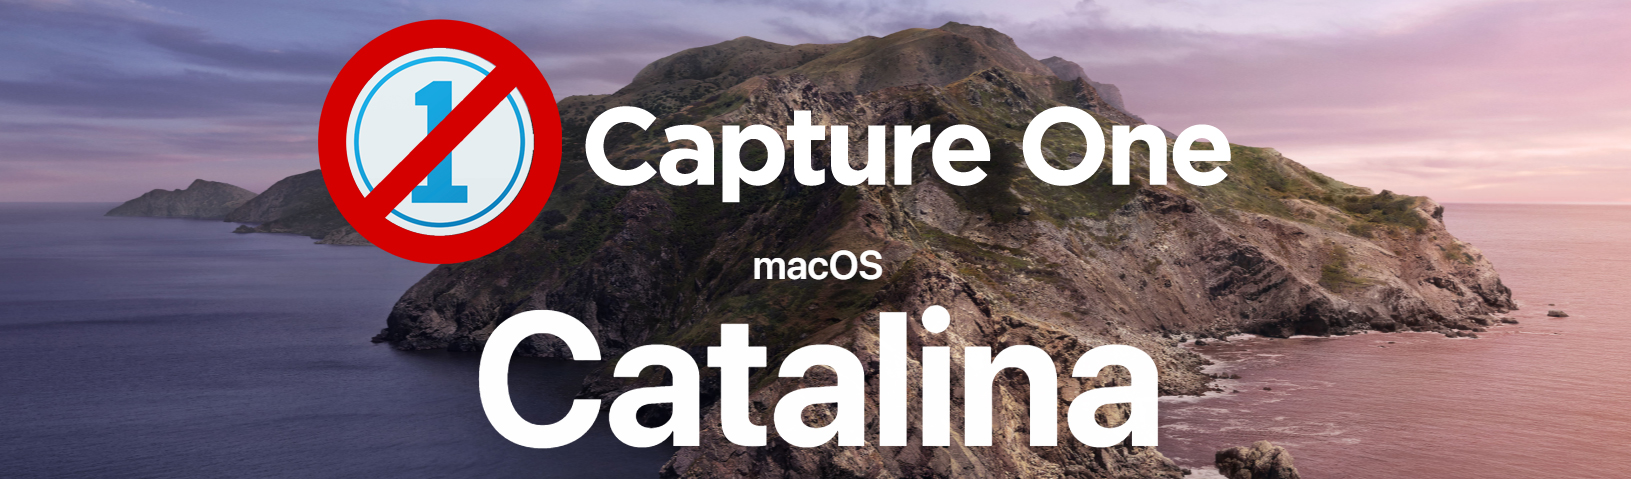 Capture One Pro - OS 10.15 Catalina - Not Supported!